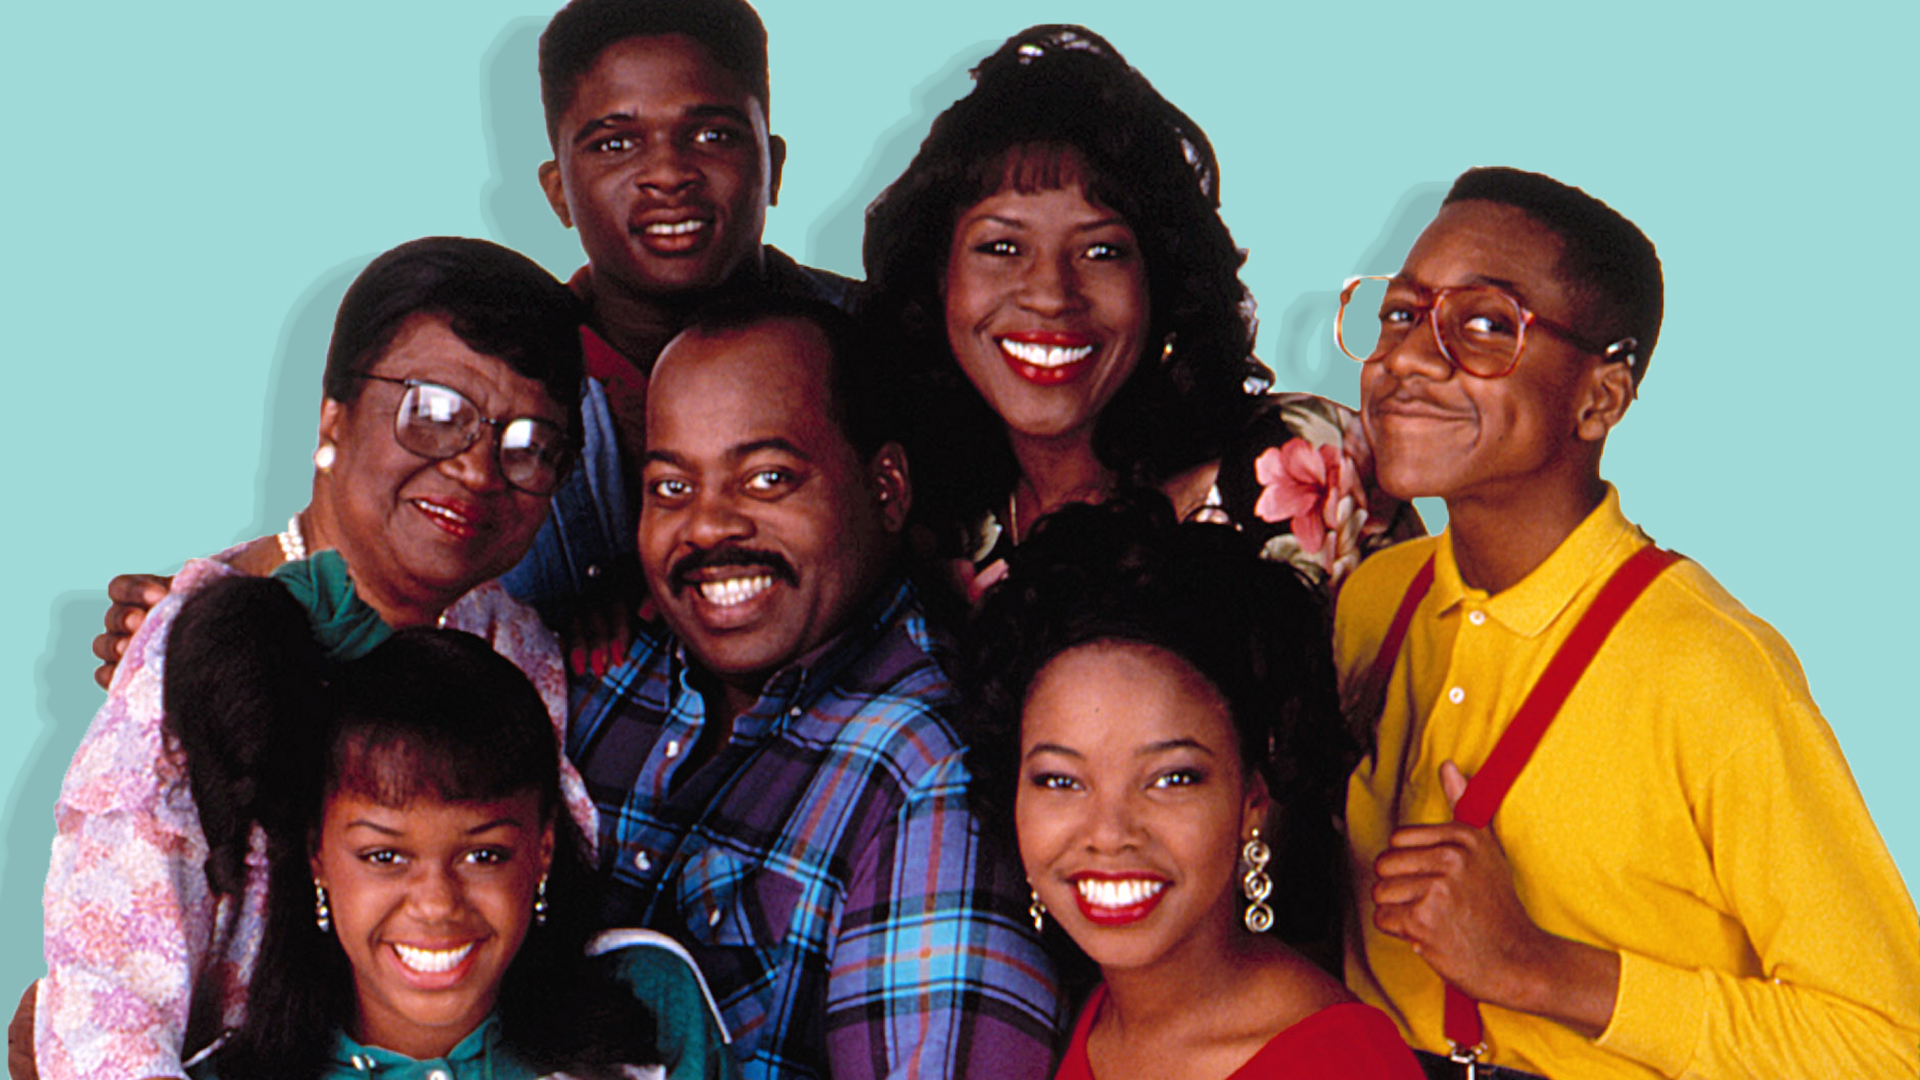 Family Matters' cast reunites for interview, look back at classic ...